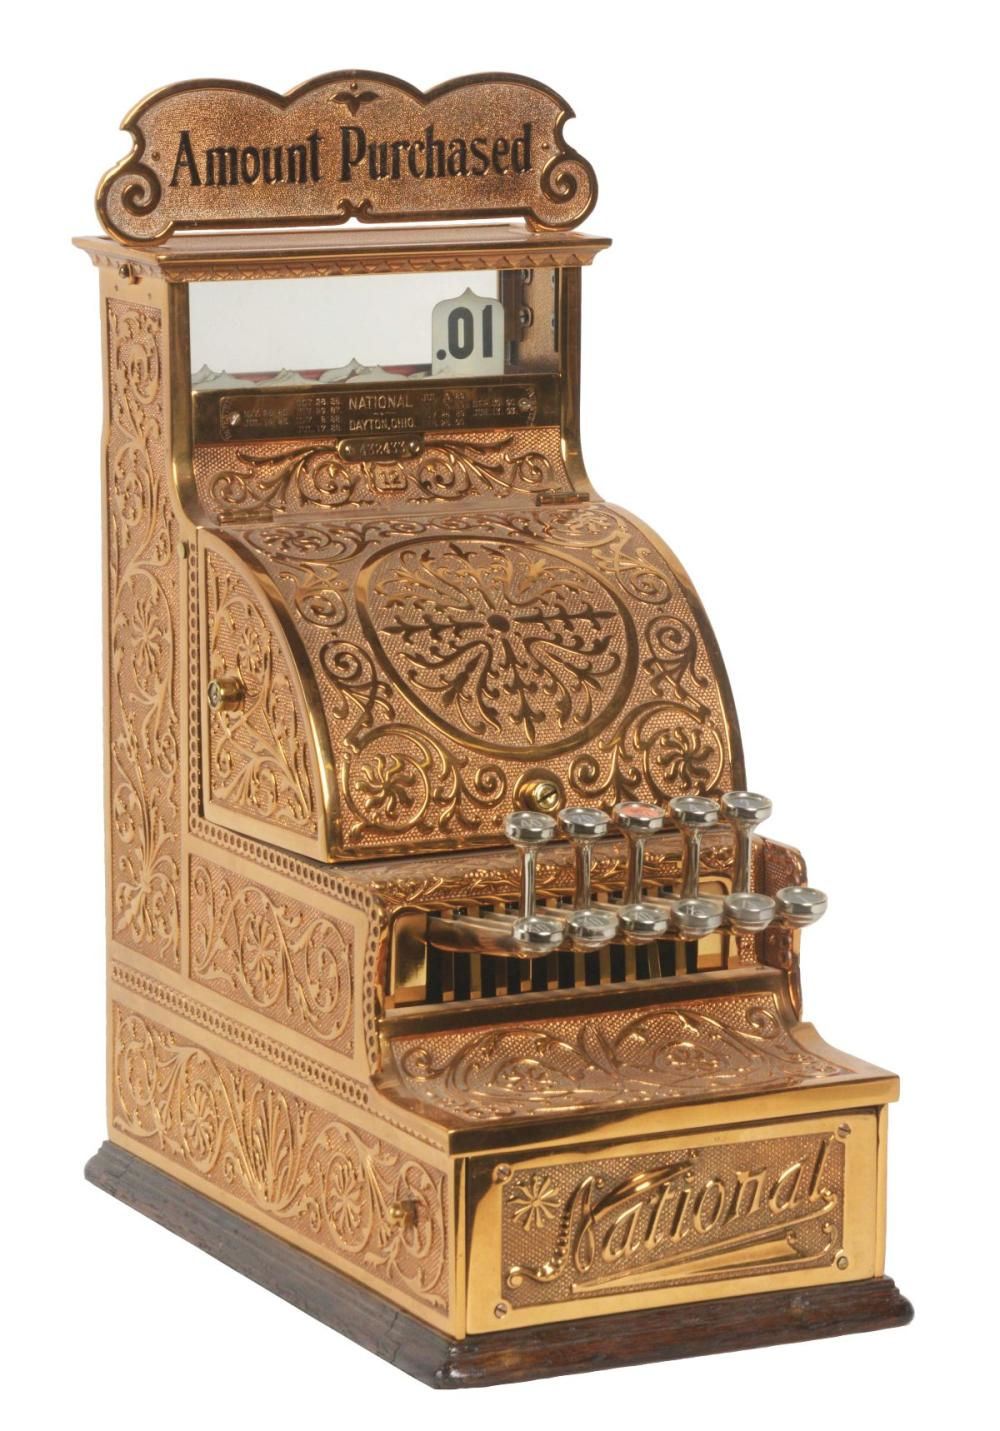 NATIONAL CASH REGISTER CO. MODEL #12.